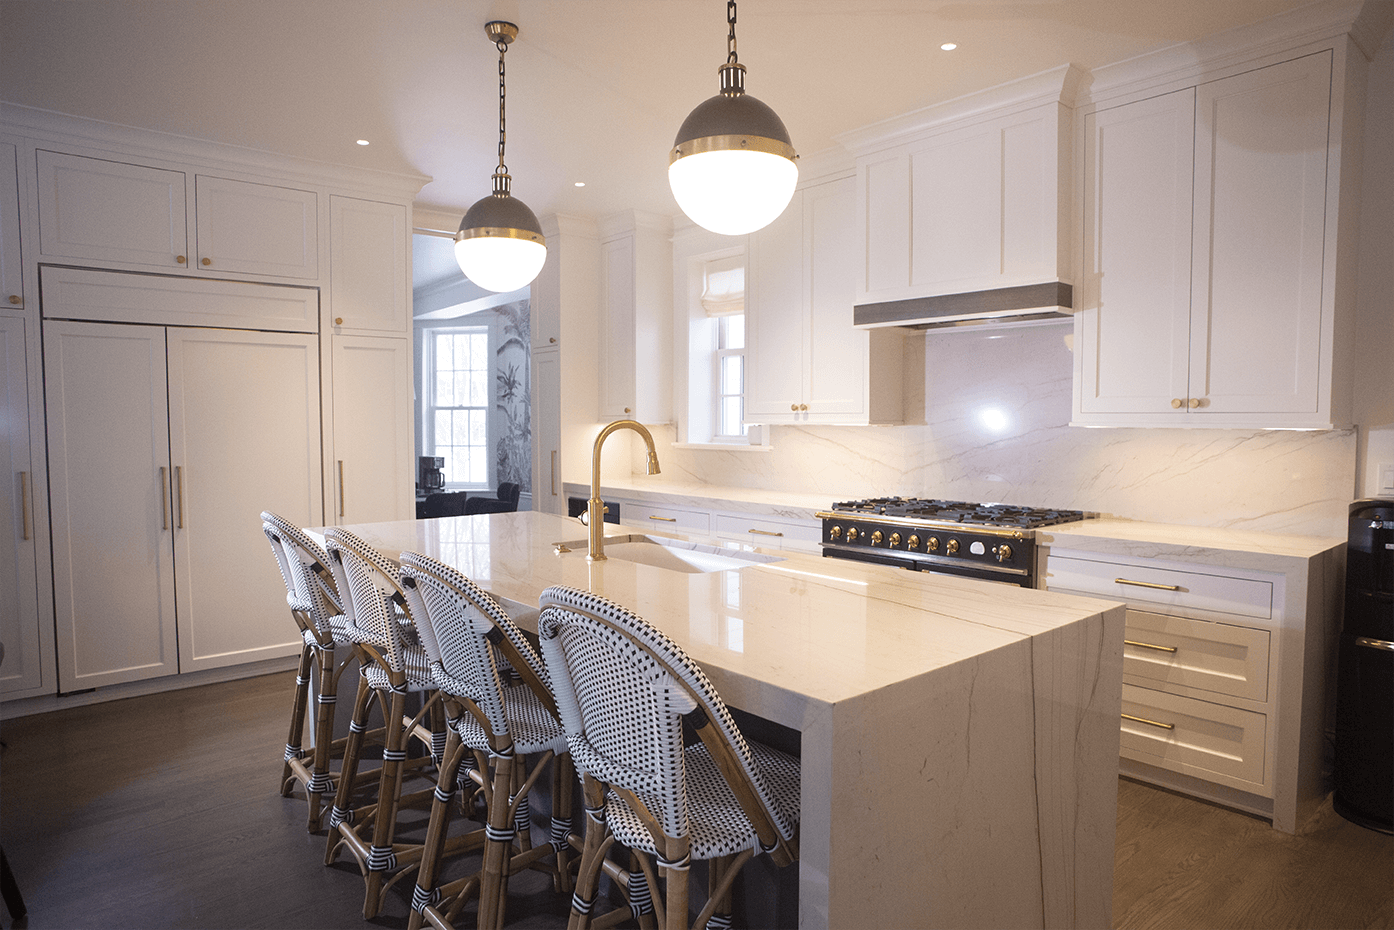 Kitchen Remodel by Twice the Measure